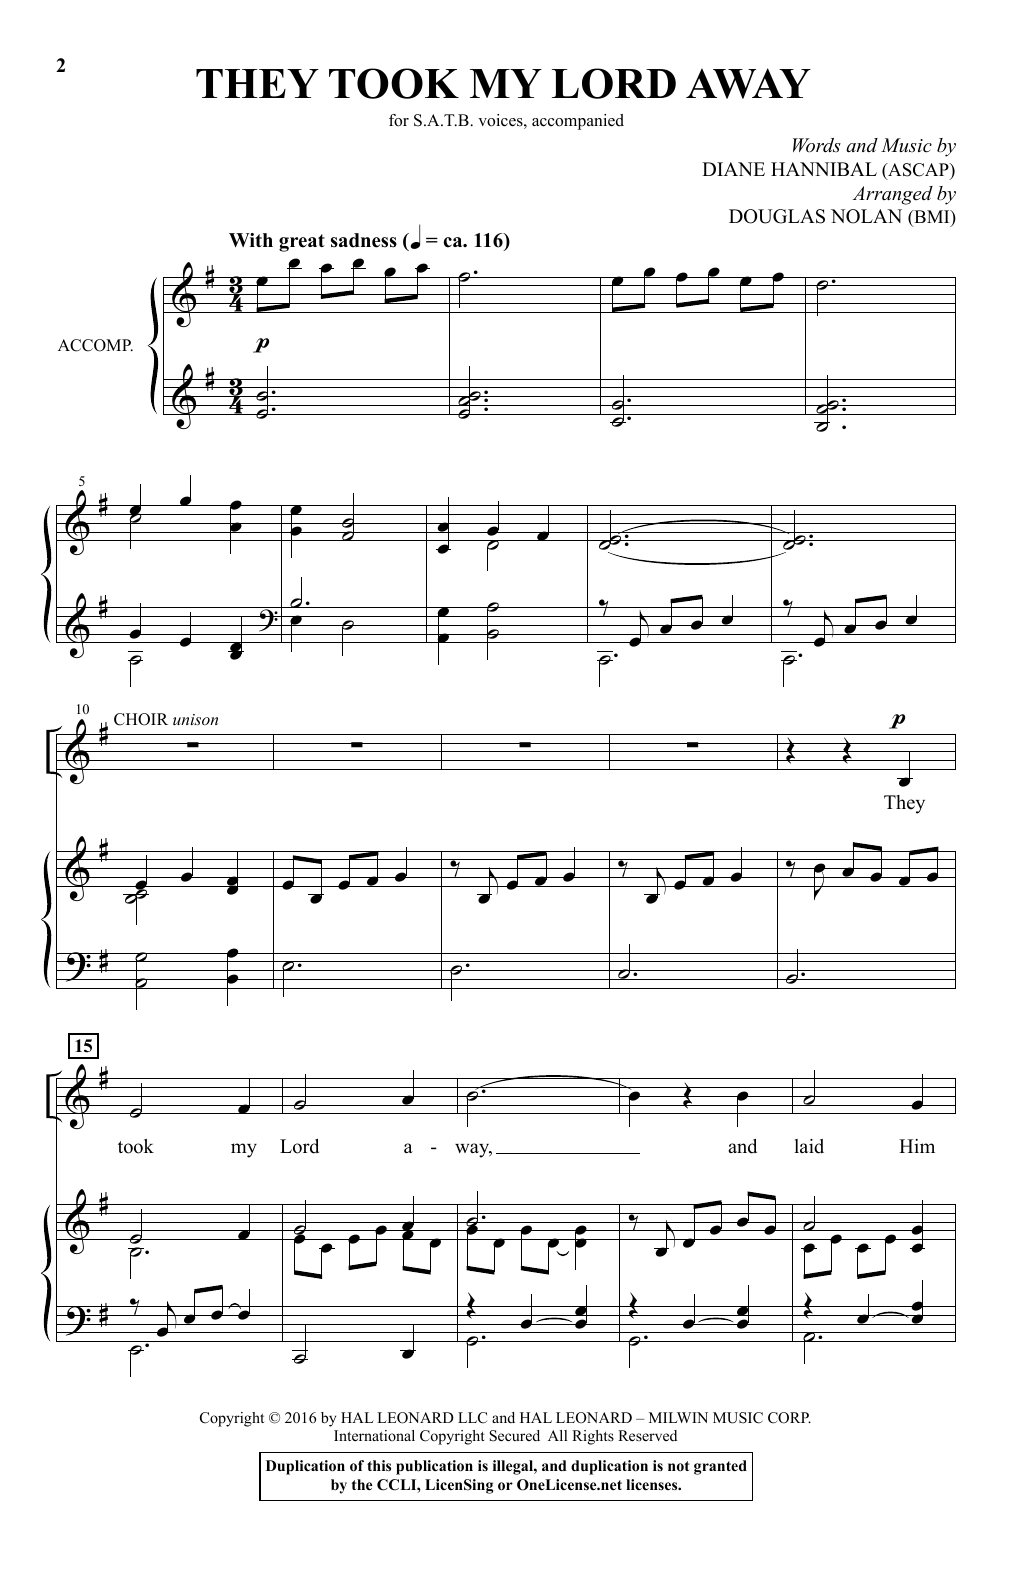 Diane Hannibal They Took My Lord Away (arr. Douglas Nolan) sheet music notes and chords. Download Printable PDF.